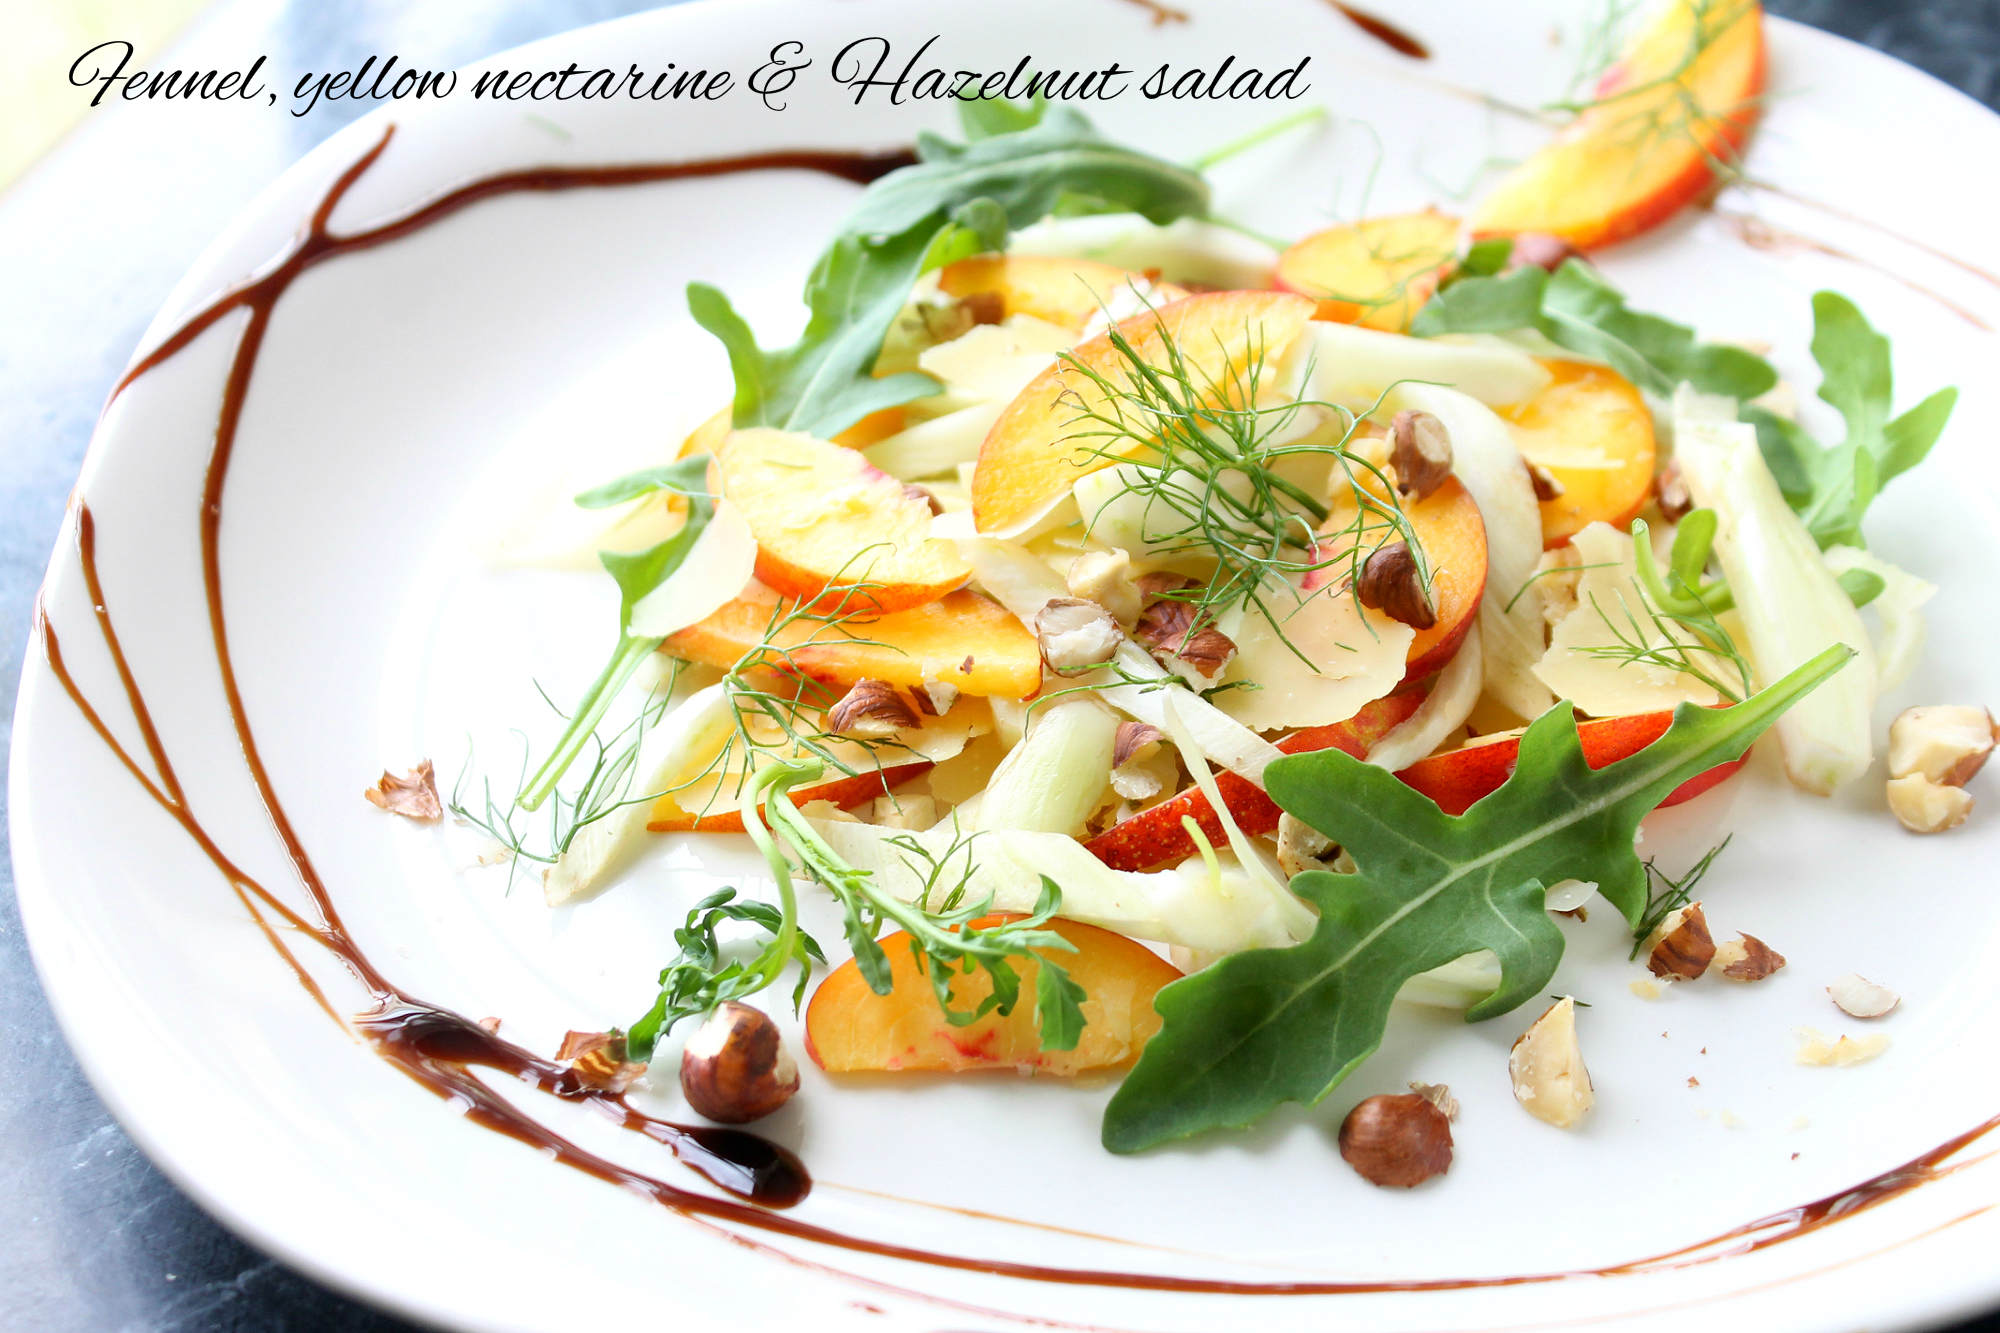 Nectarine, fennel and hazelnut salad